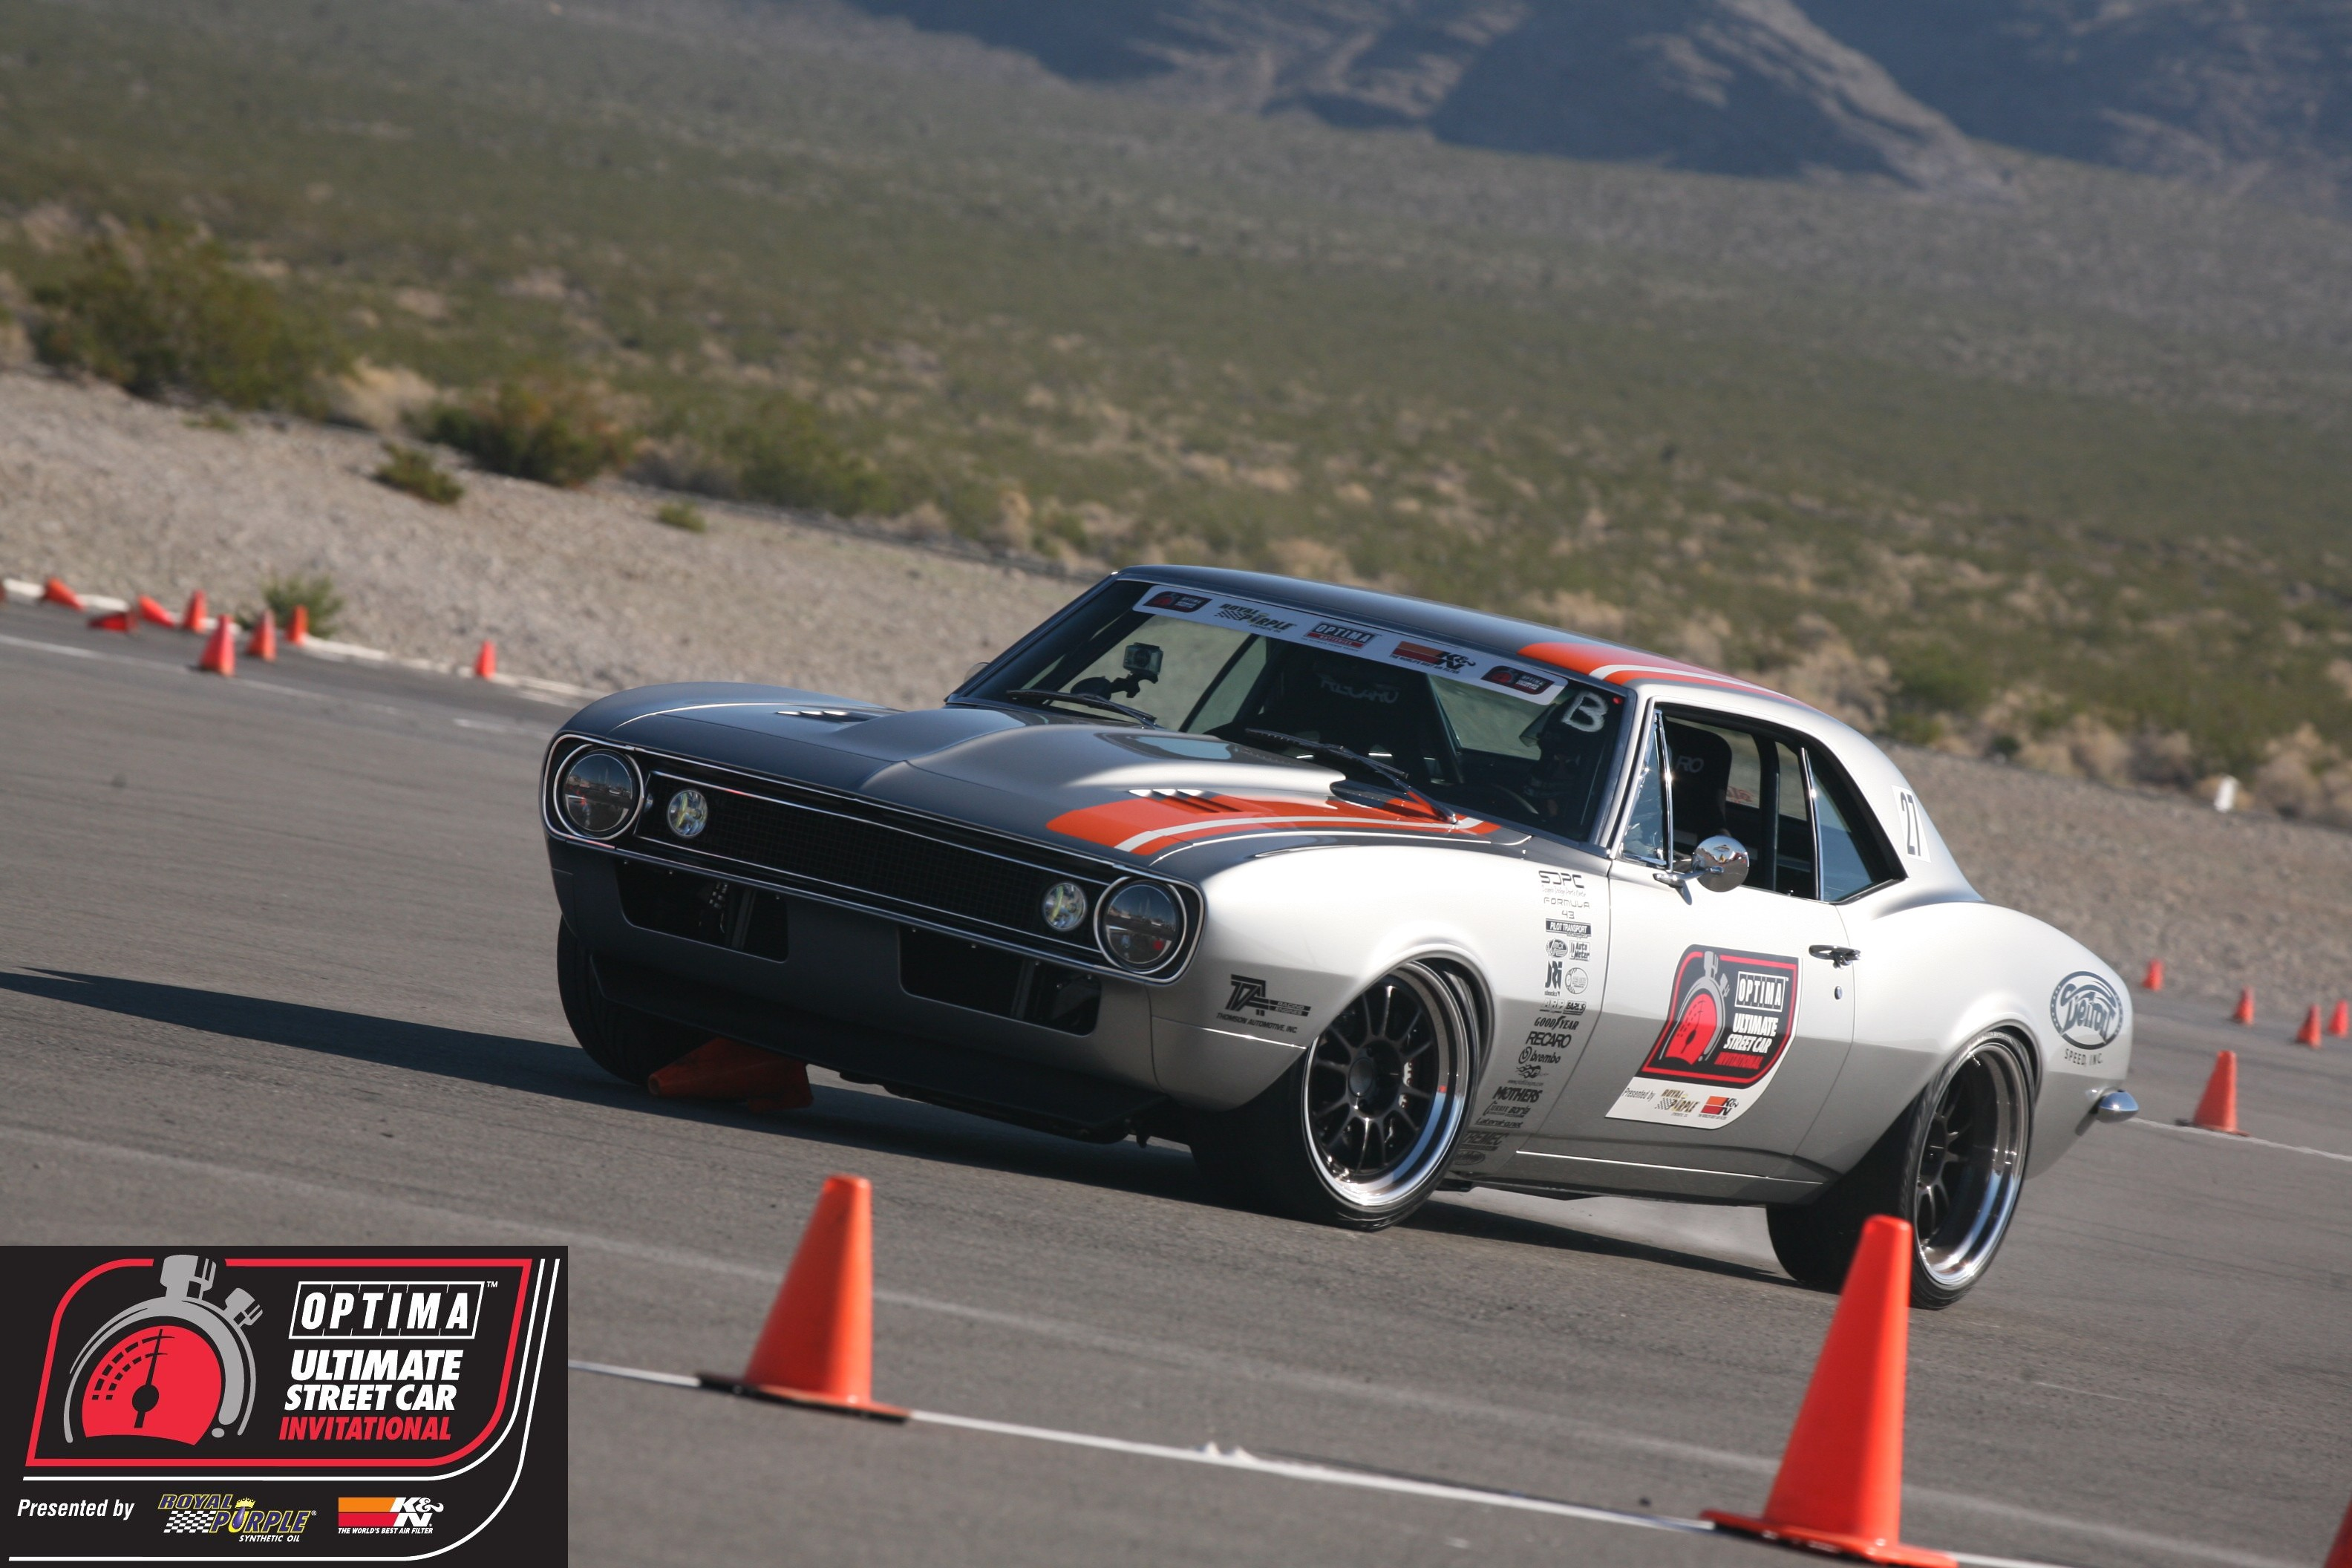 Ousci Preview Rob Macgregors Hellboy 1970 Chevrolet C10 1968 Chevy Lifted Congratulations To Mark Stielow On Winning The Ridetech Autocross At 2012